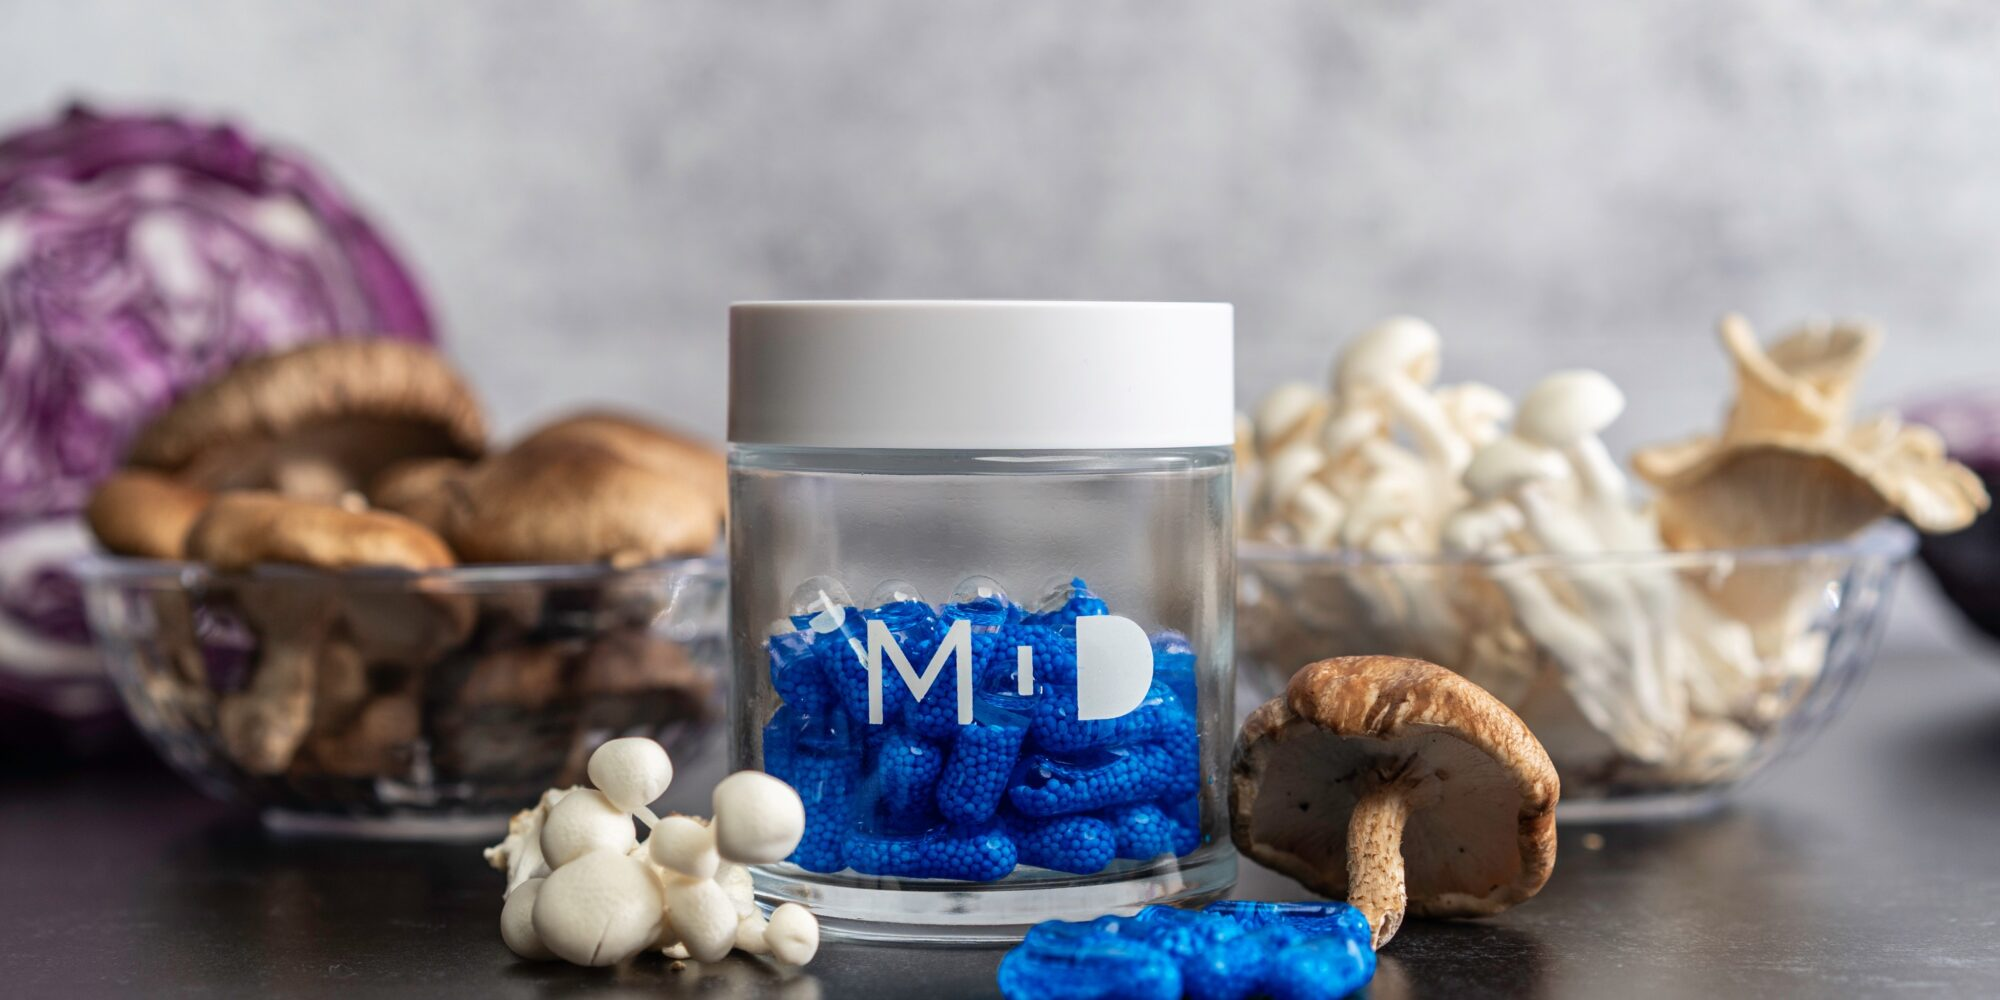 A New Crop Of Wellness Startups Is Joining The Mushroom Rush